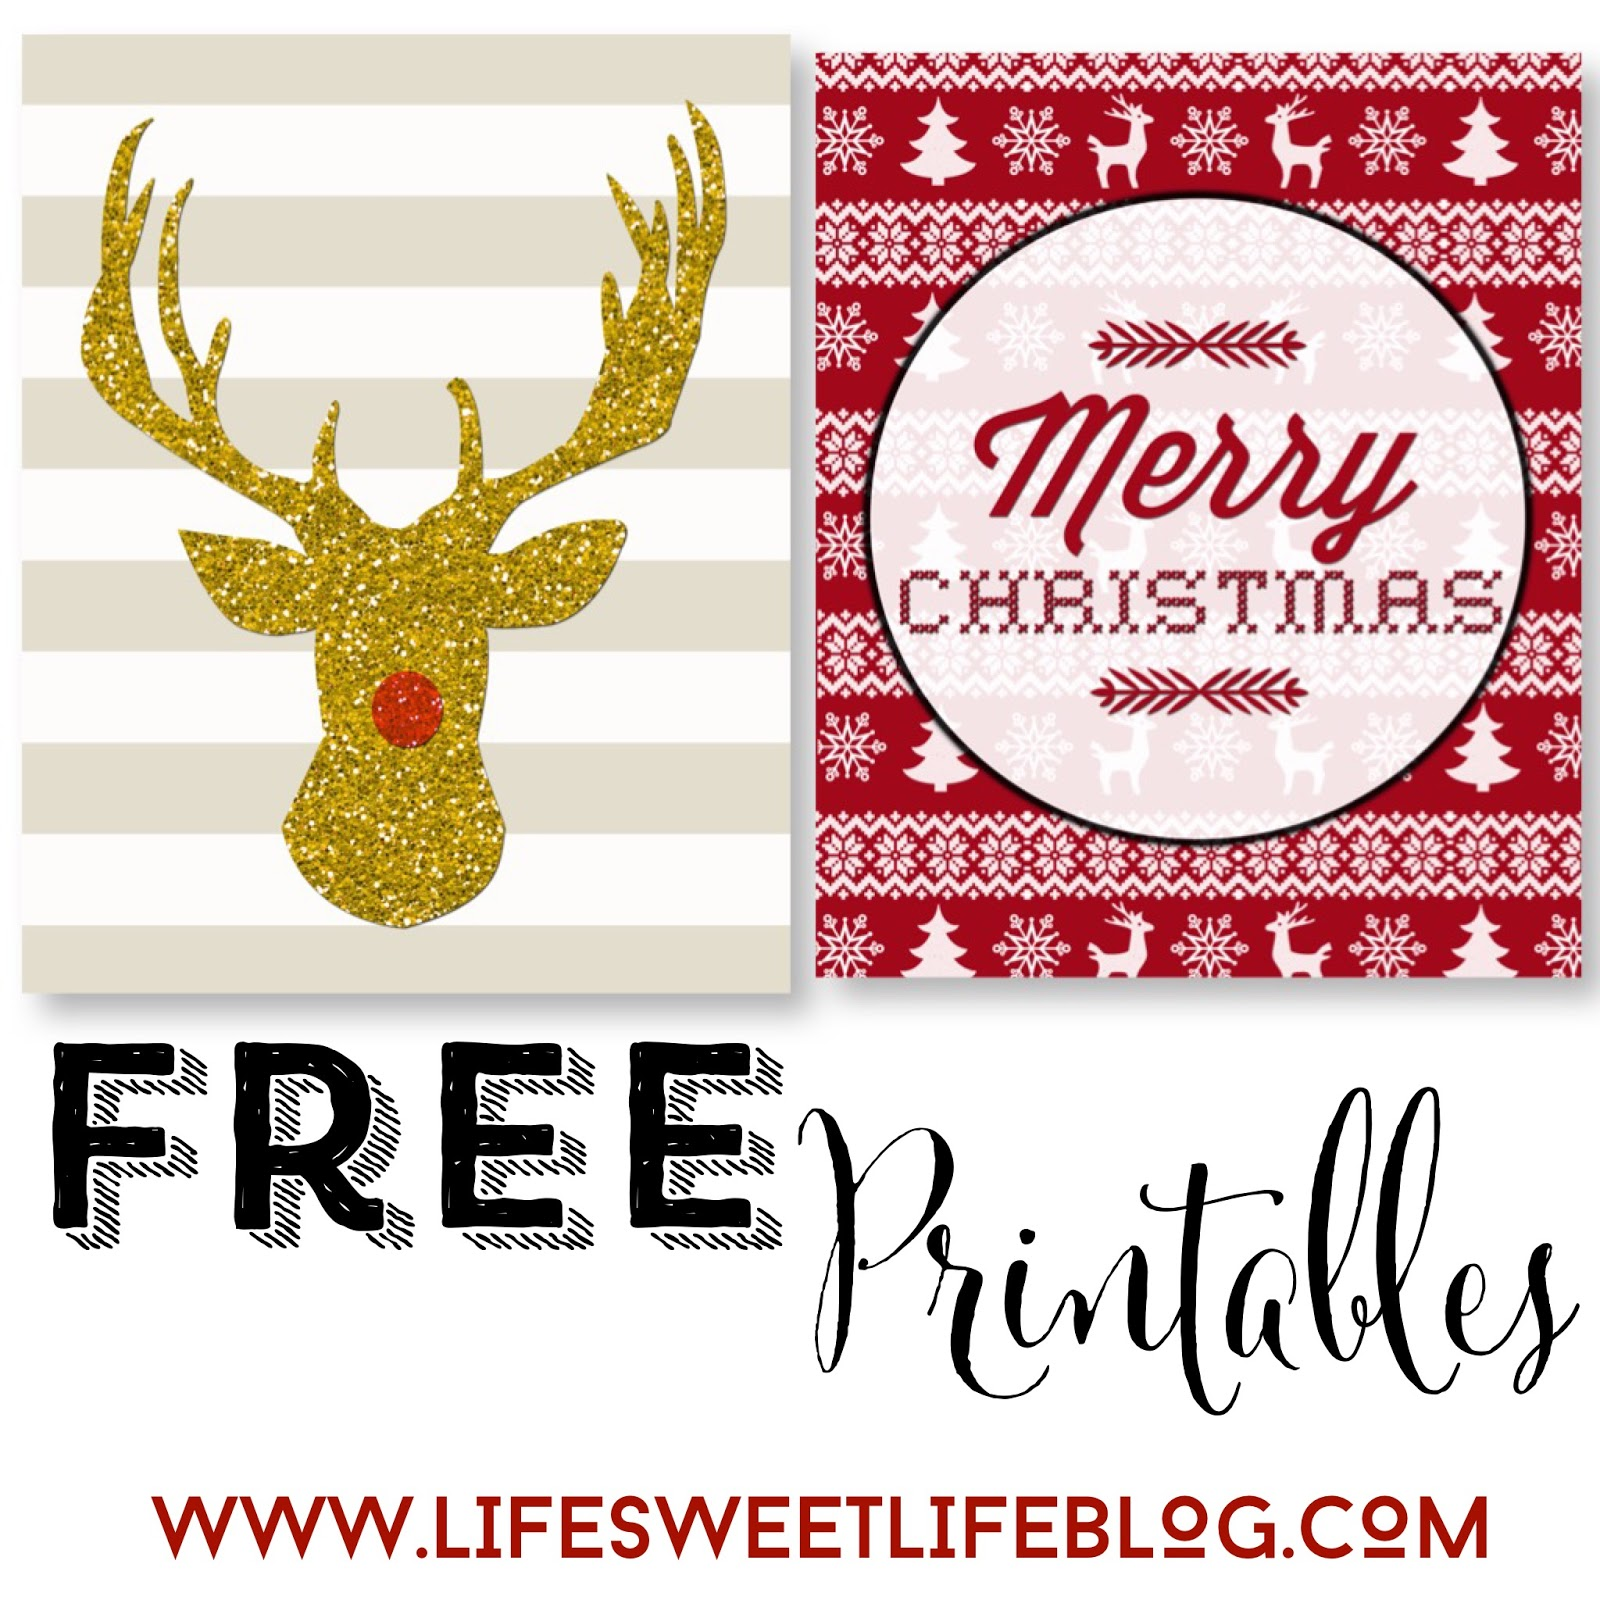 image regarding Printable Deer Head titled Lifetime Adorable Lifetime: Free of charge Xmas Printables: Deer Intellect